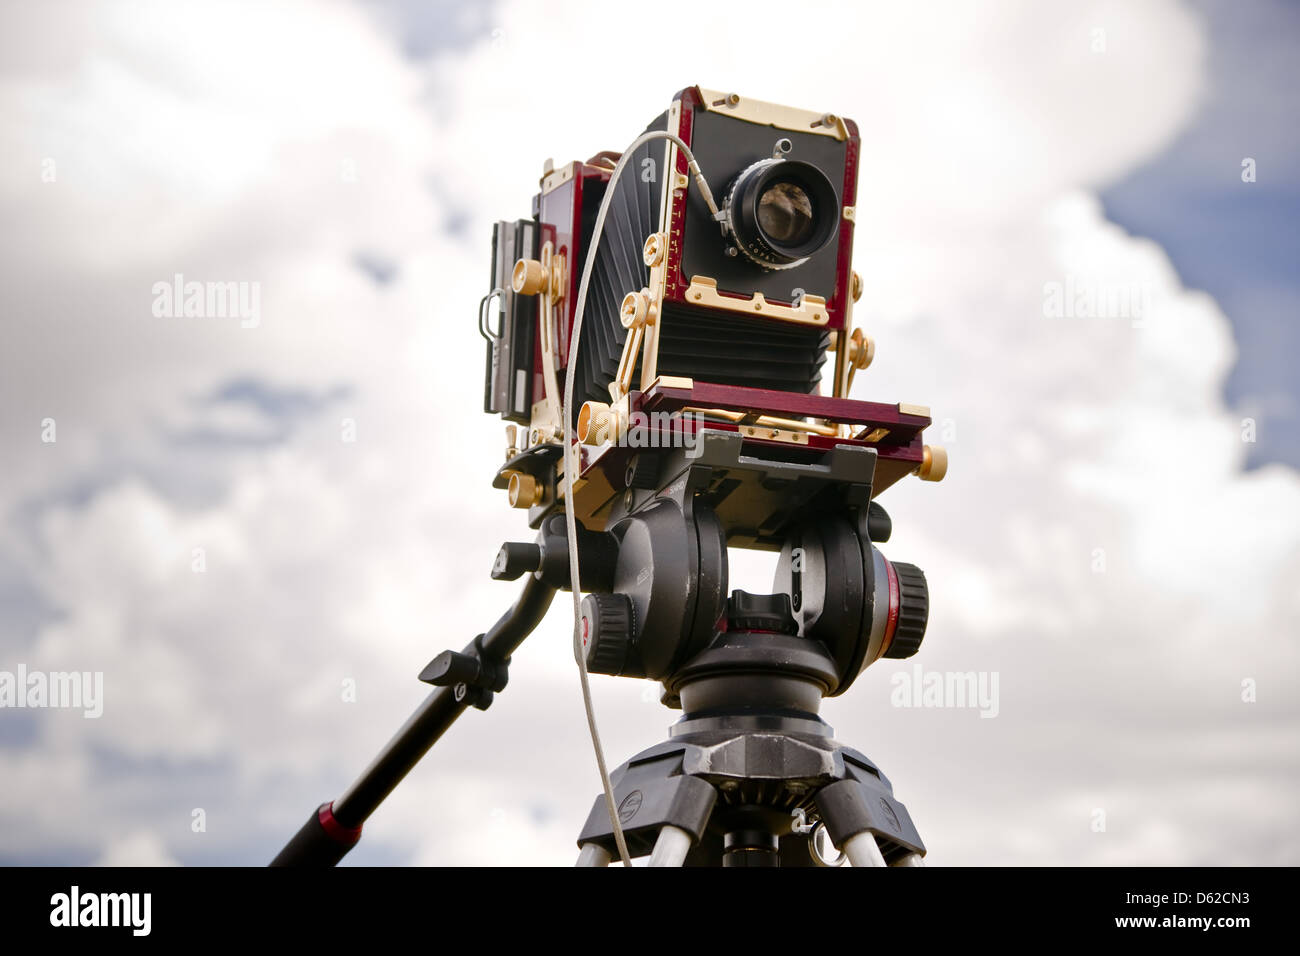 Classic View Camera - Stock Image